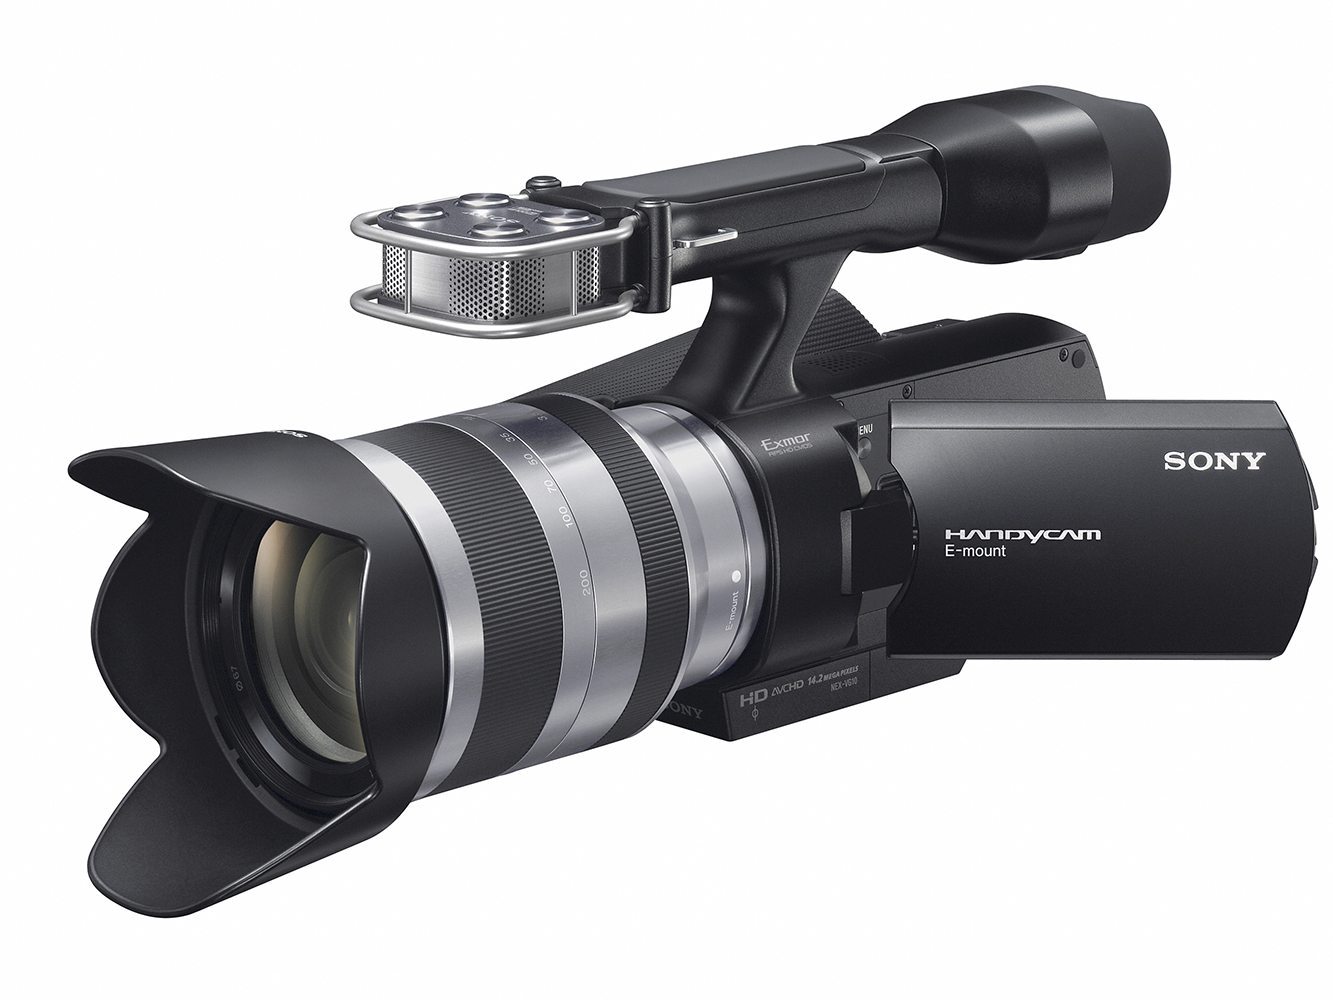 Sony Handycam NEX-VG10, shown here with the 18-200mm kit lens.